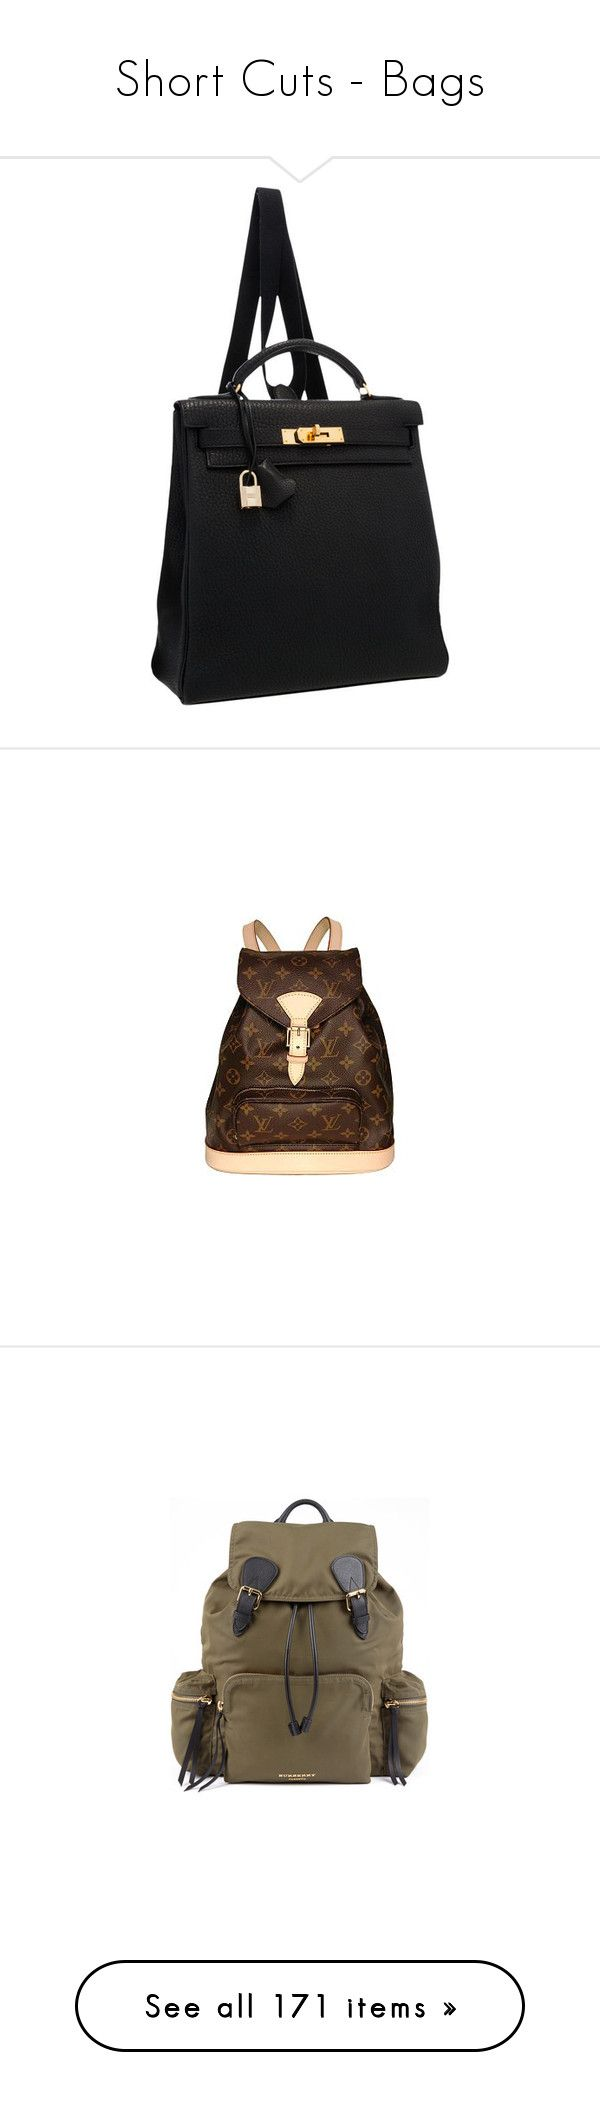 """""""Short Cuts - Bags"""" by gracebeckett on Polyvore featuring bags, backpacks, hermes backpack, genuine leather bags, leather backpacks, day pack rucksack, day pack backpack, louis vuitton, purses e accessories"""